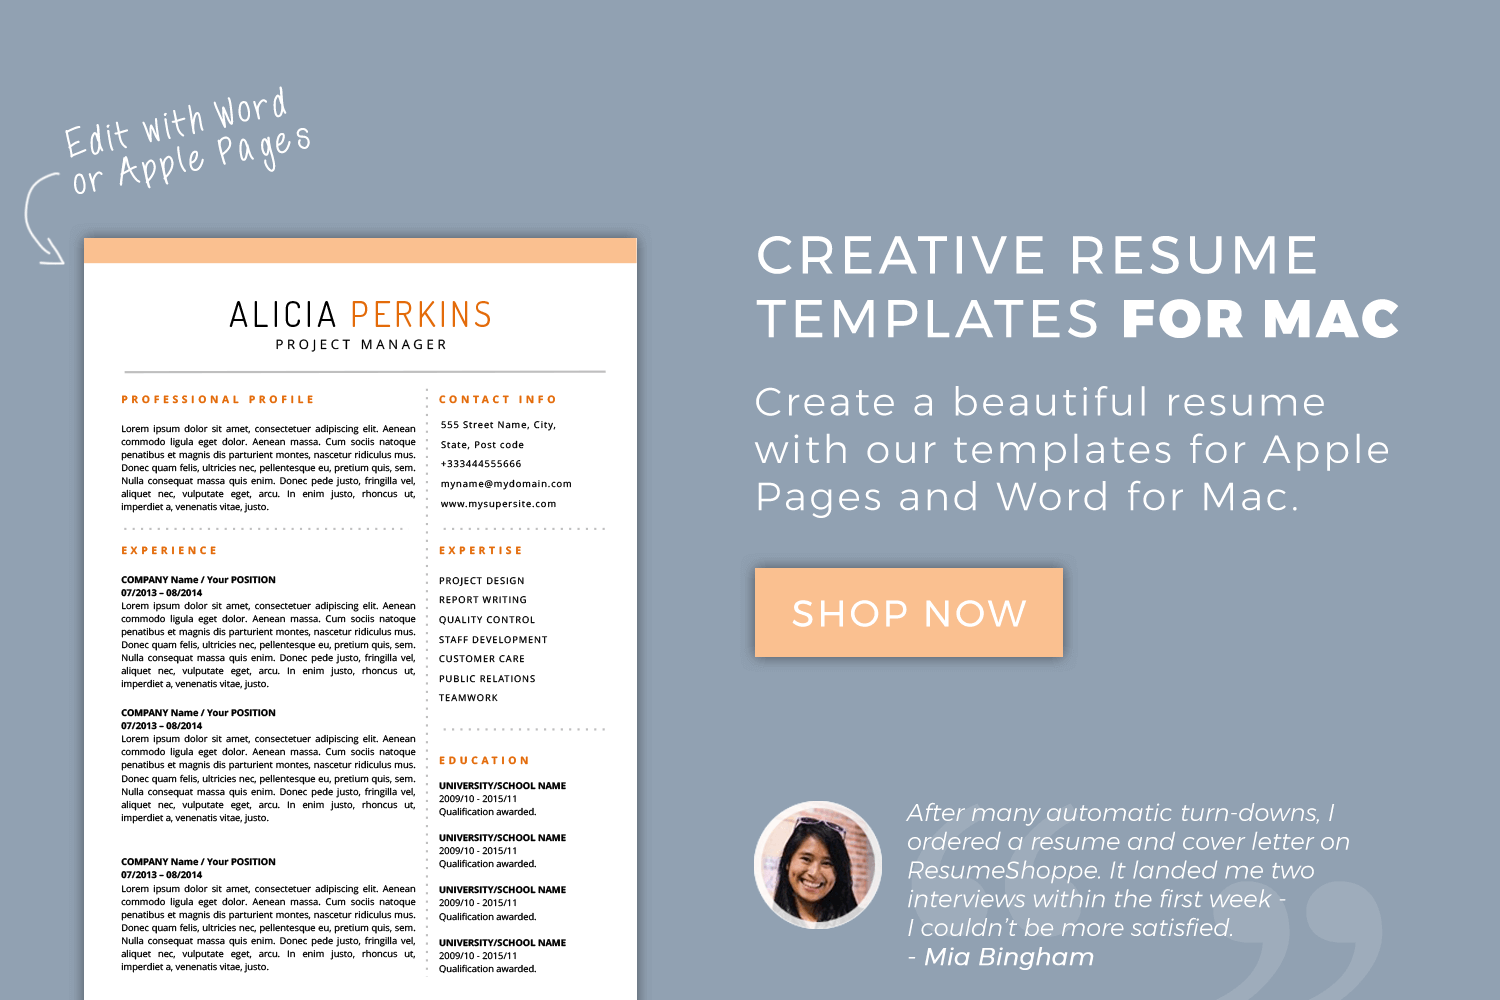 download resume templates mac pages